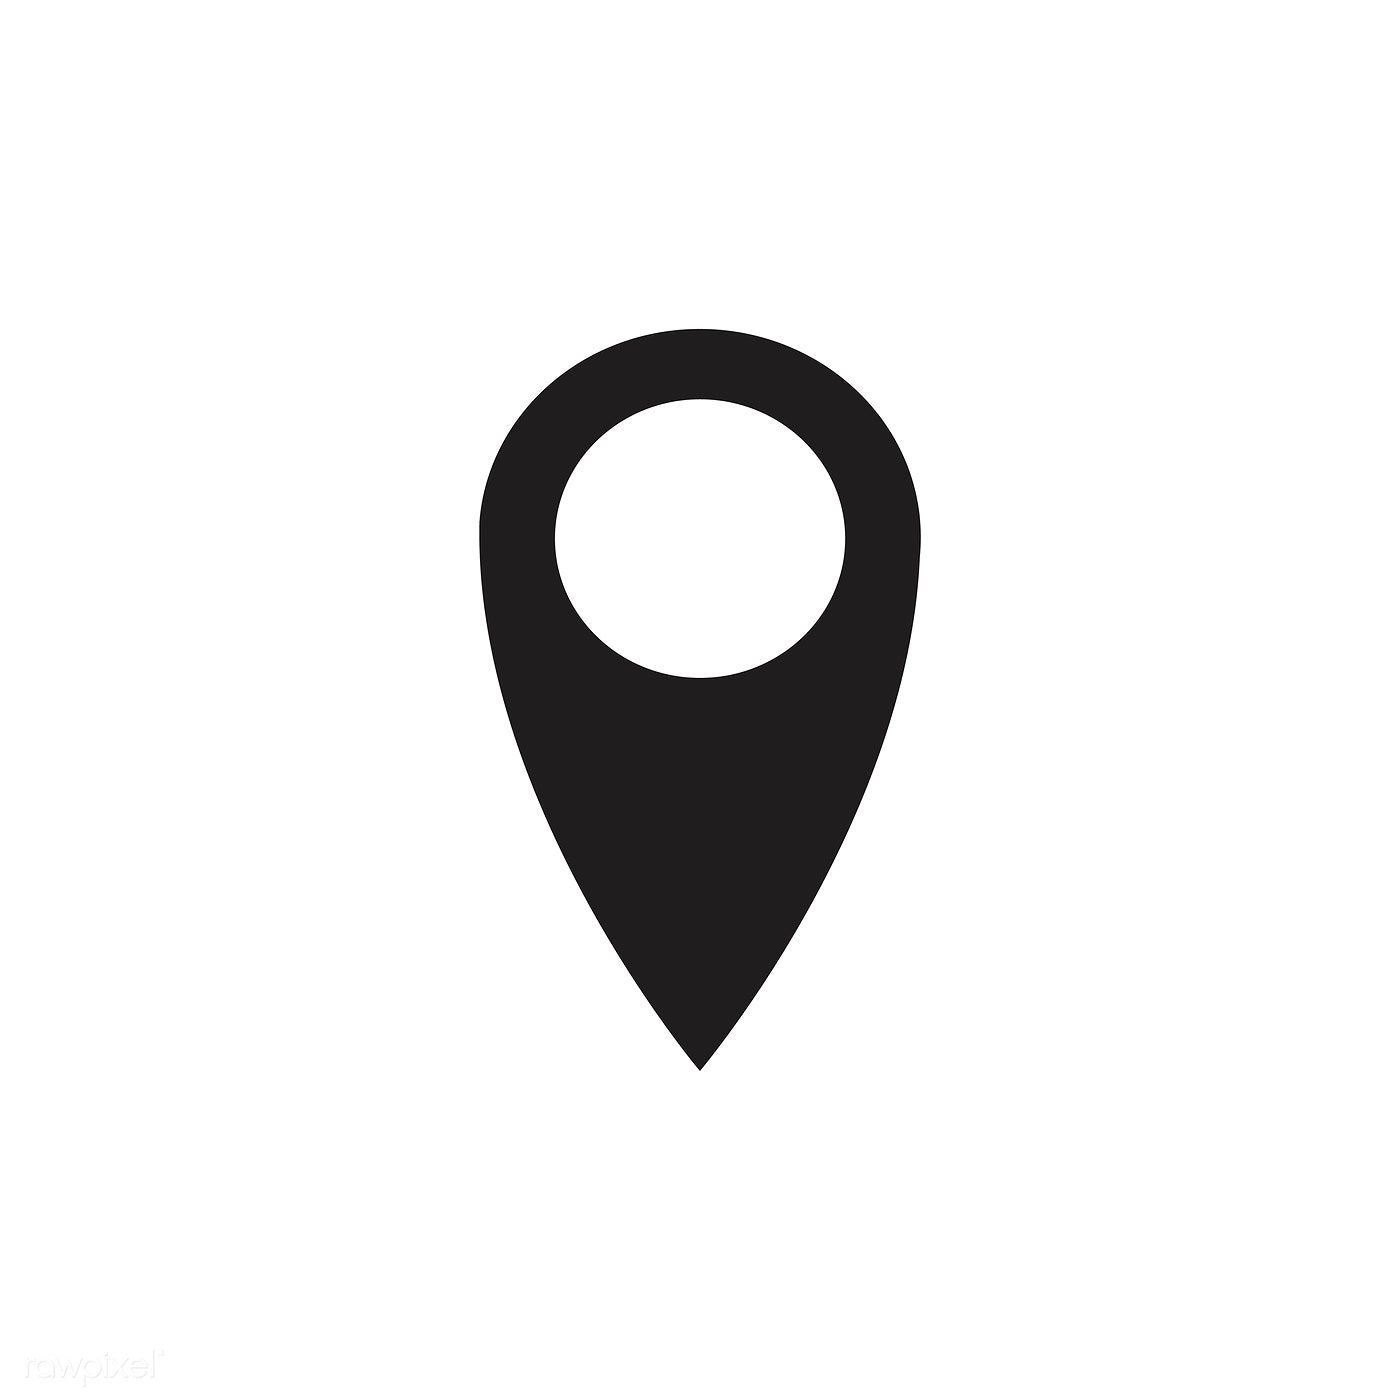 Isolated Black Map Pin Icon Free Image By Rawpixel Com Pin Map Location Icon Icon